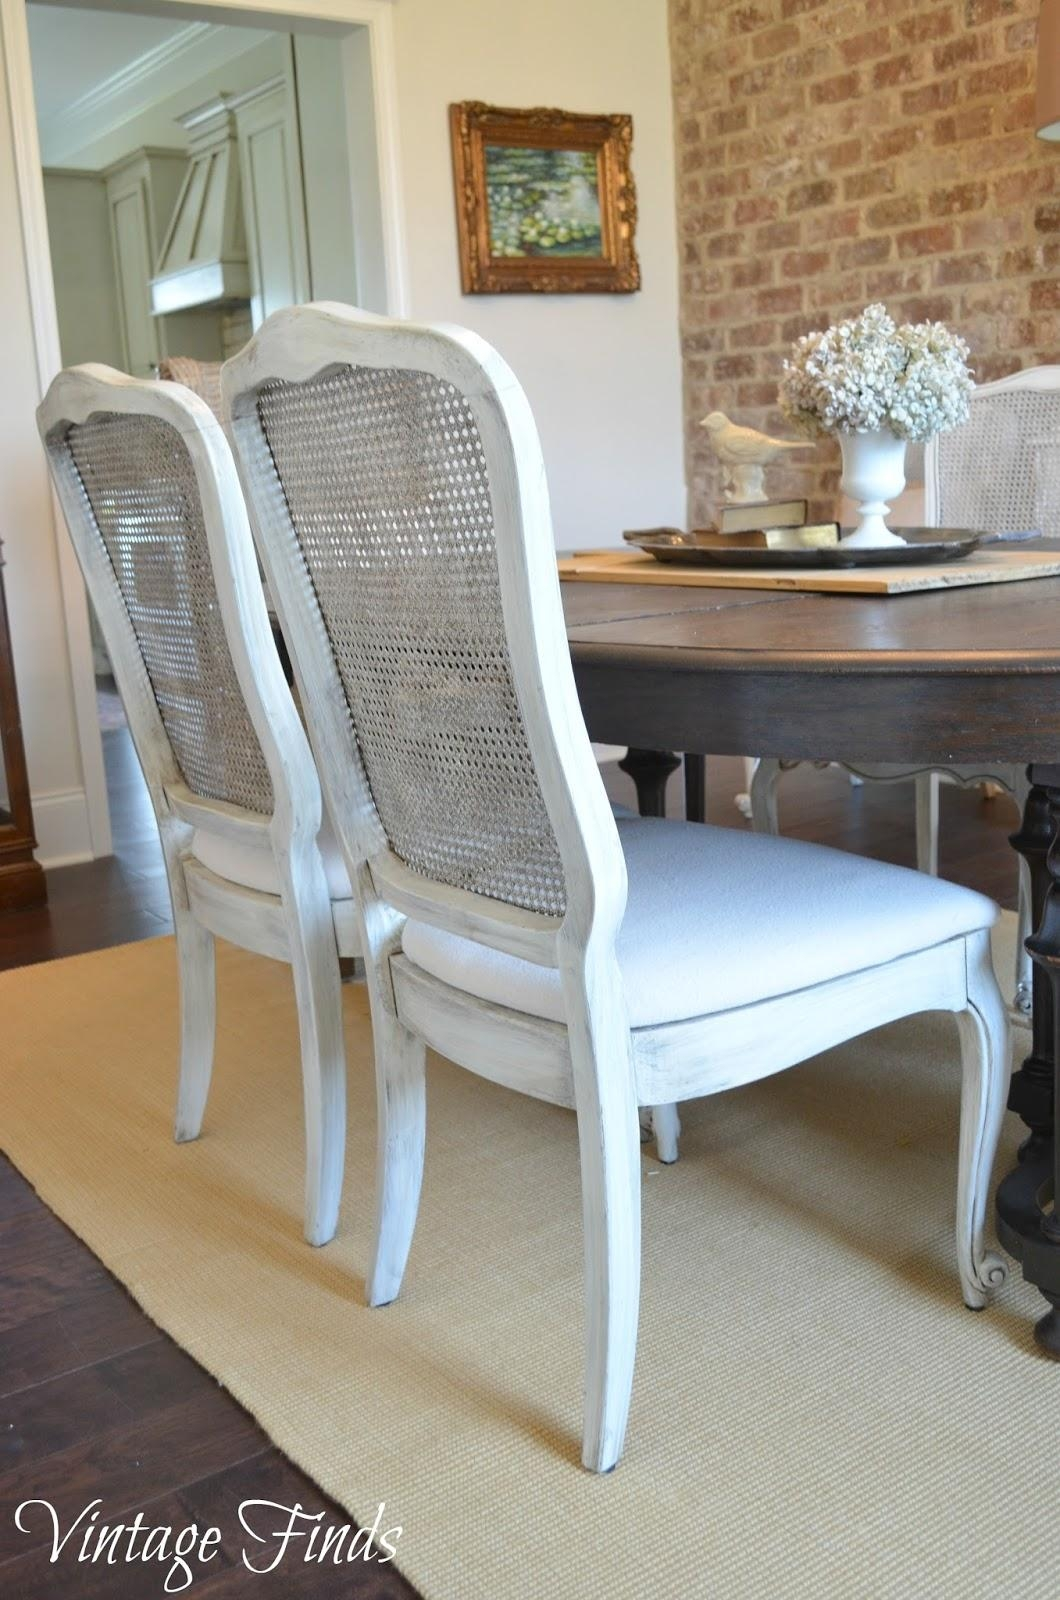 Vintage Finds: New House: Updated Dining Chairs Within White Cane Sofas (Image 23 of 25)